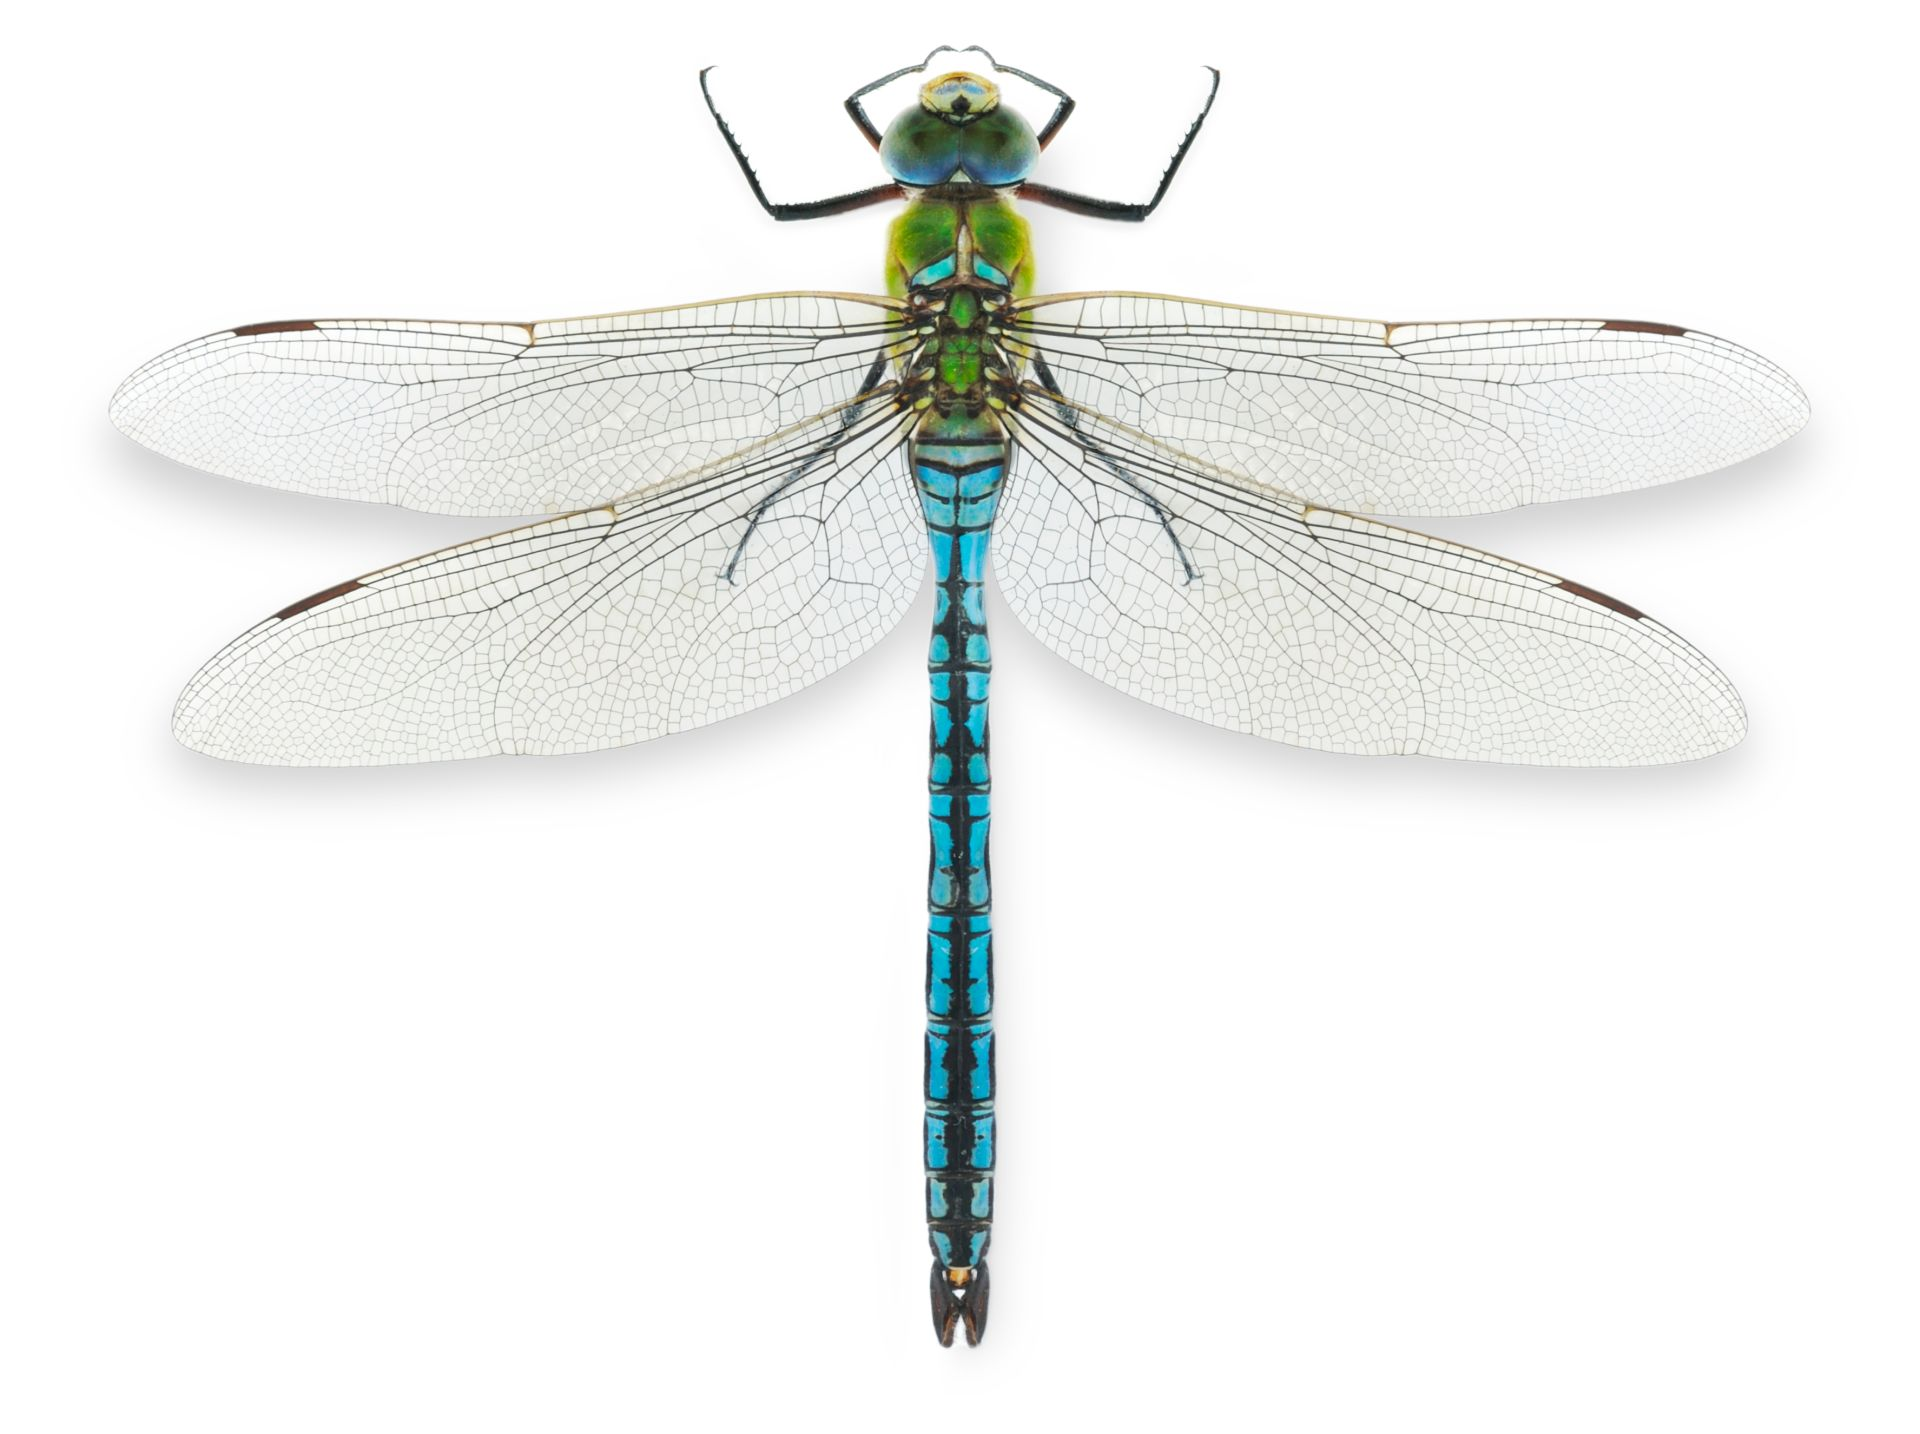 What Do Dragonflies Symbolize?